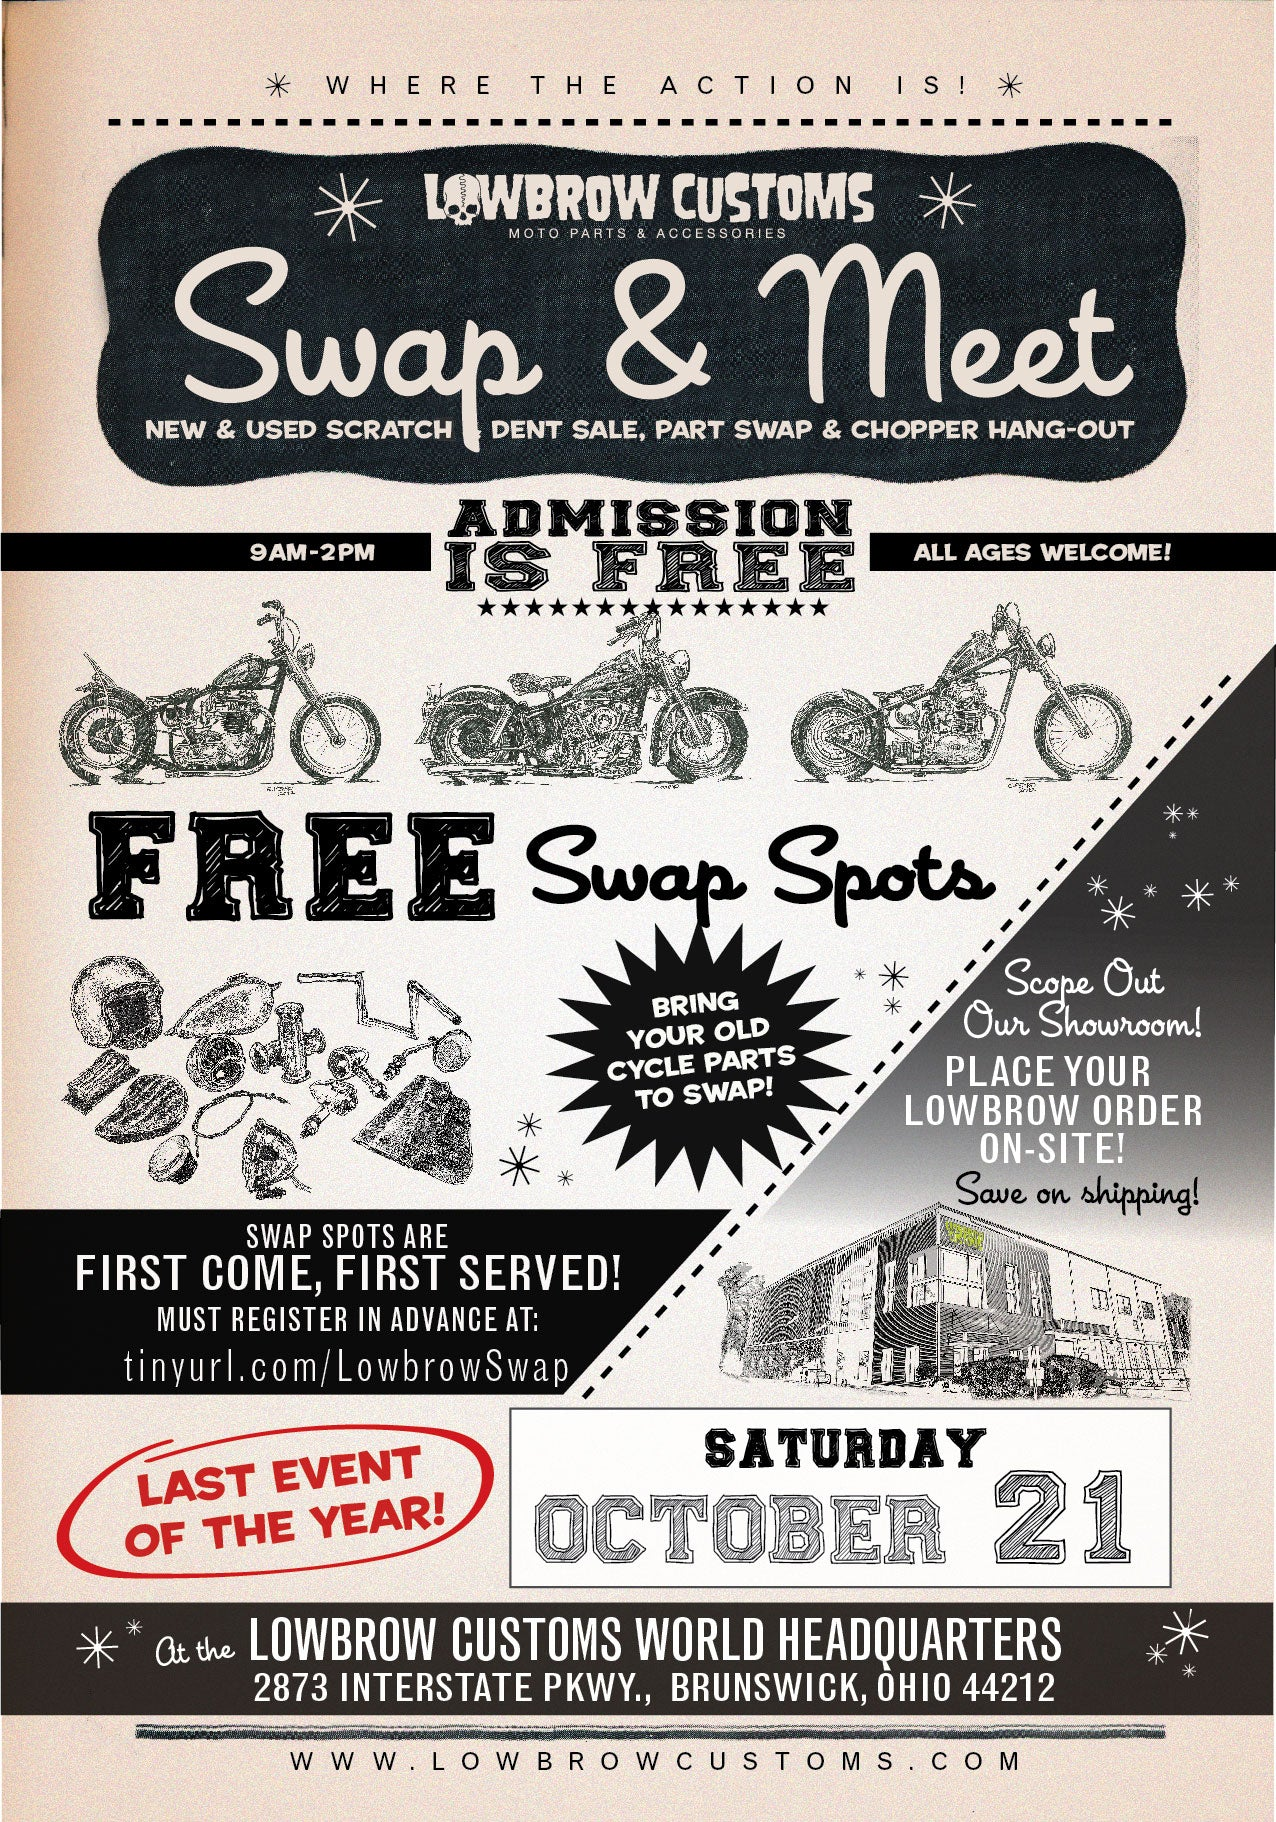 Last Lowbrow Customs Swap & Meet of 2017 - October 21st